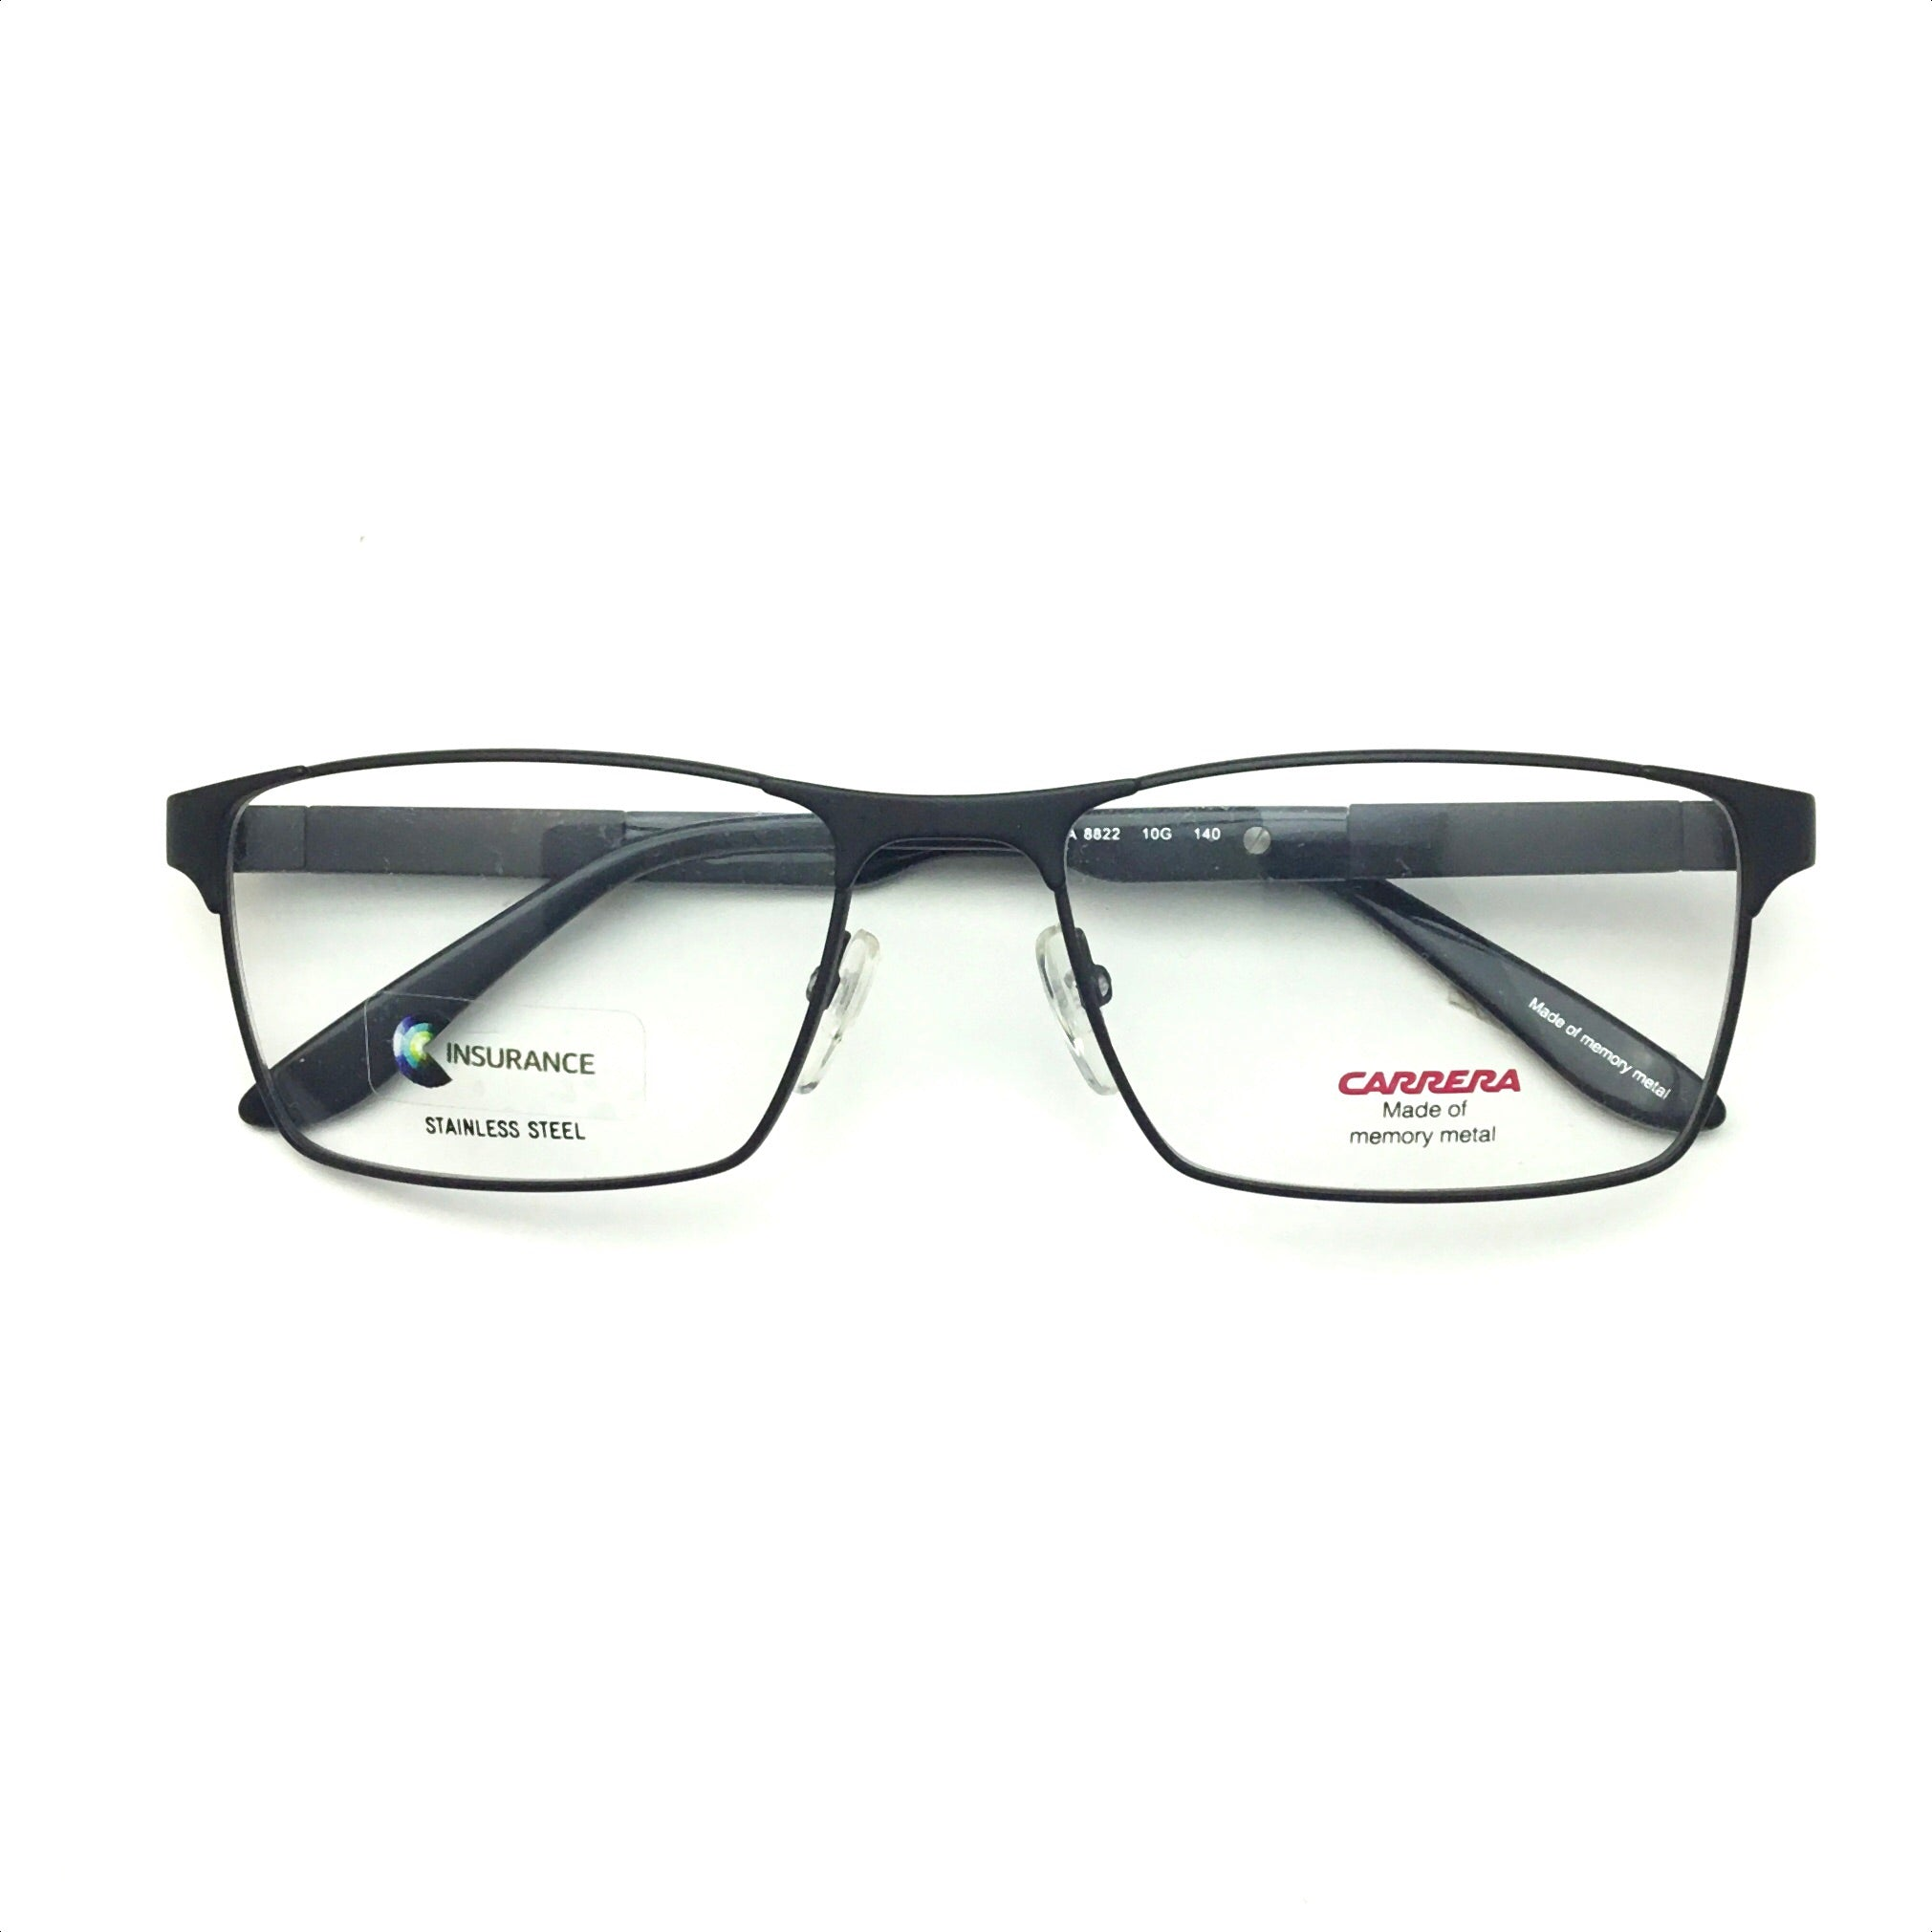 Carrera Glasses $149 SPECIAL E18